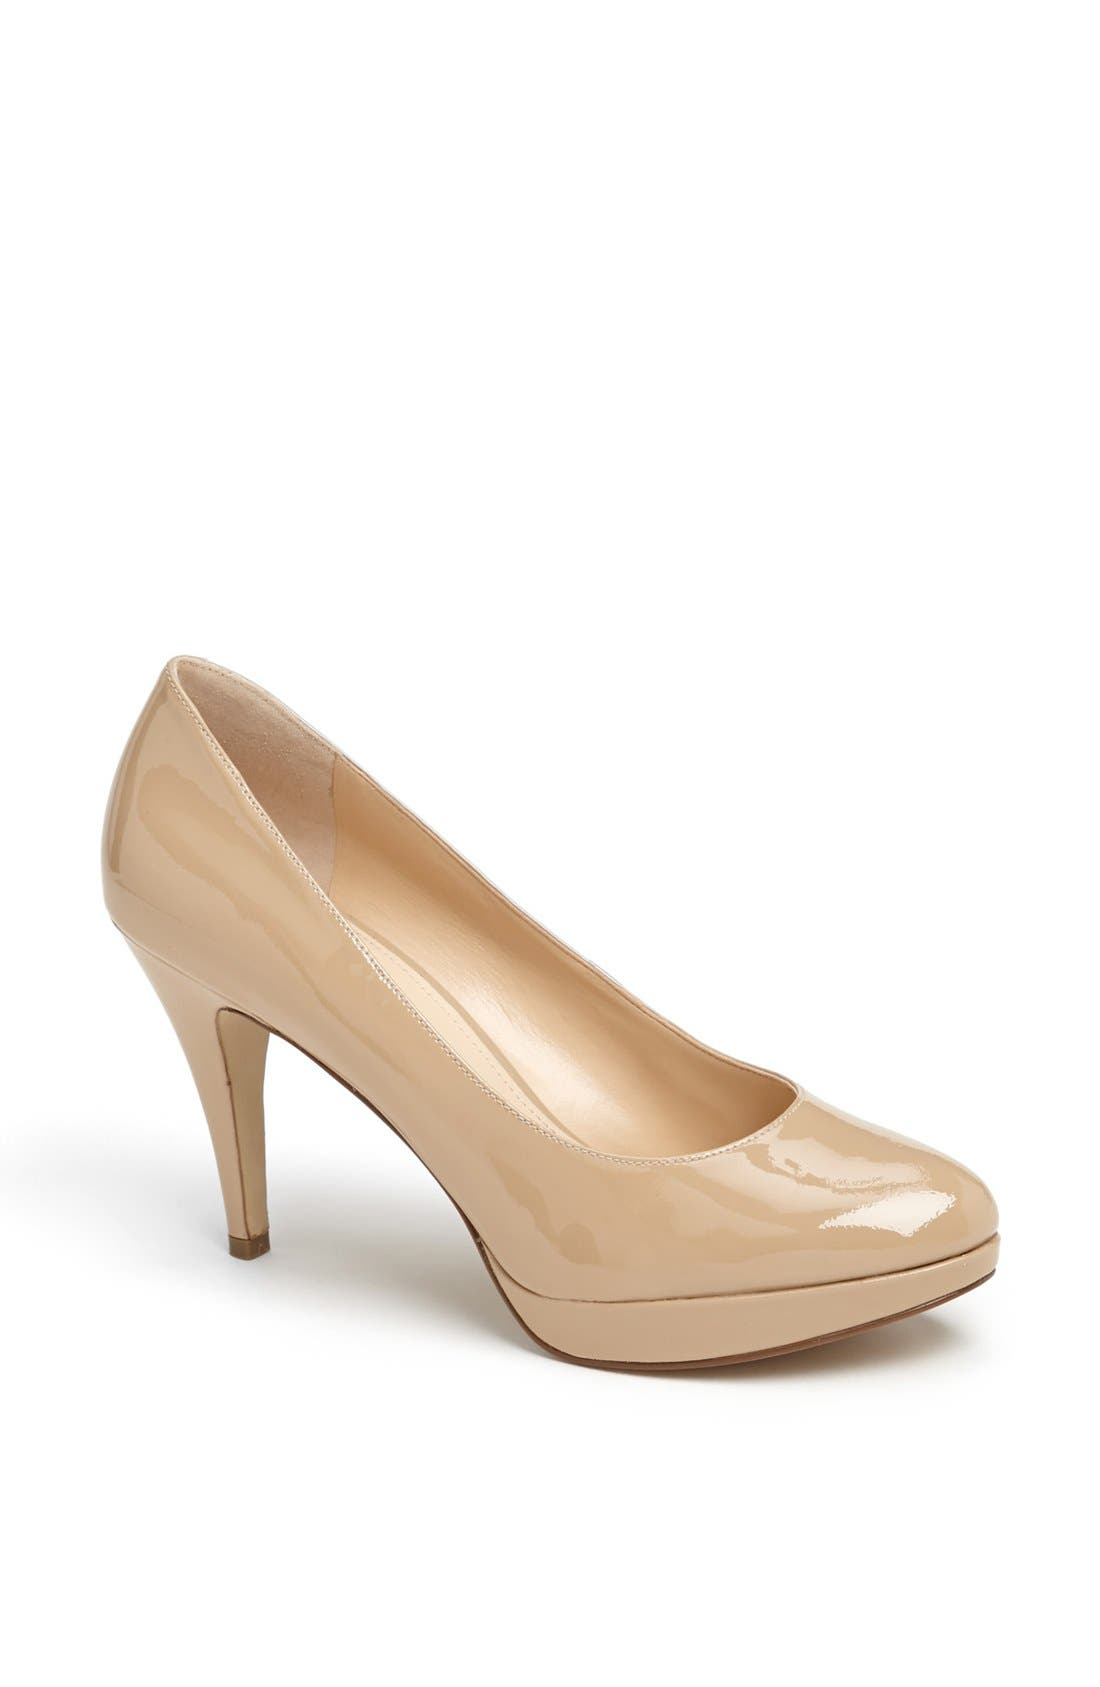 Alternate Image 1 Selected - Enzo Angiolini 'Dixy' Pump